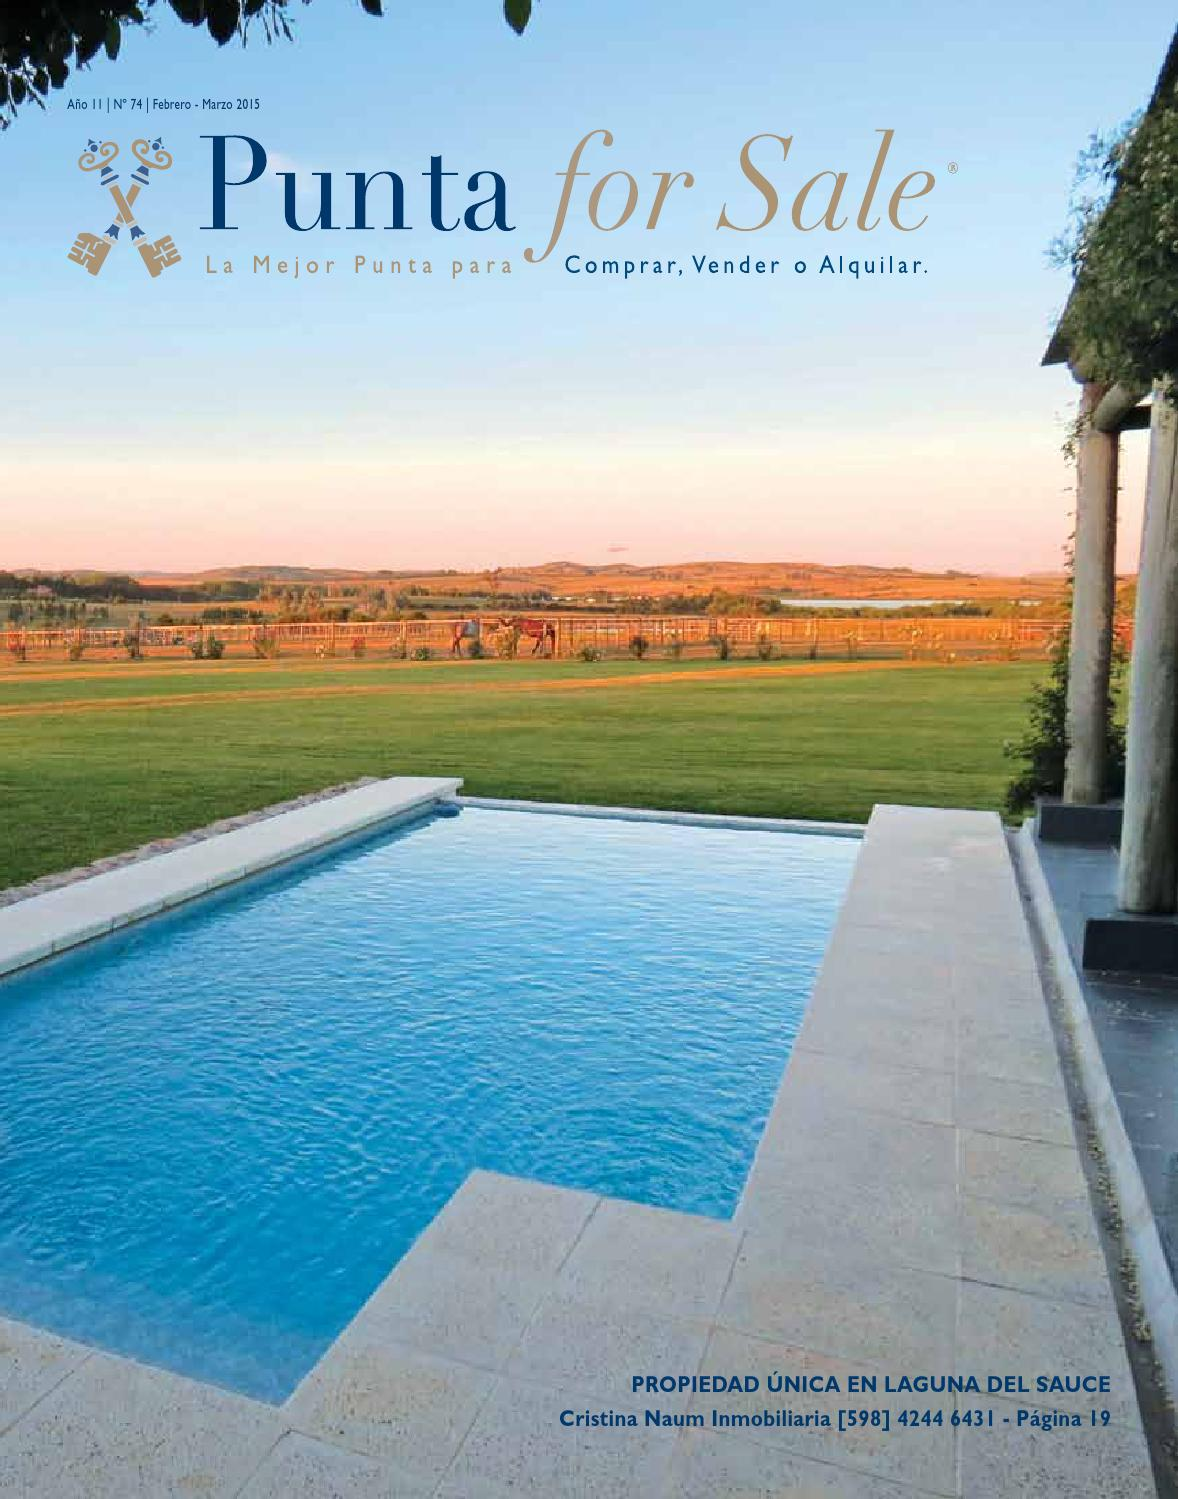 Revista de Real Estate Punta For Sale, edición Febrero - Marzo 2015